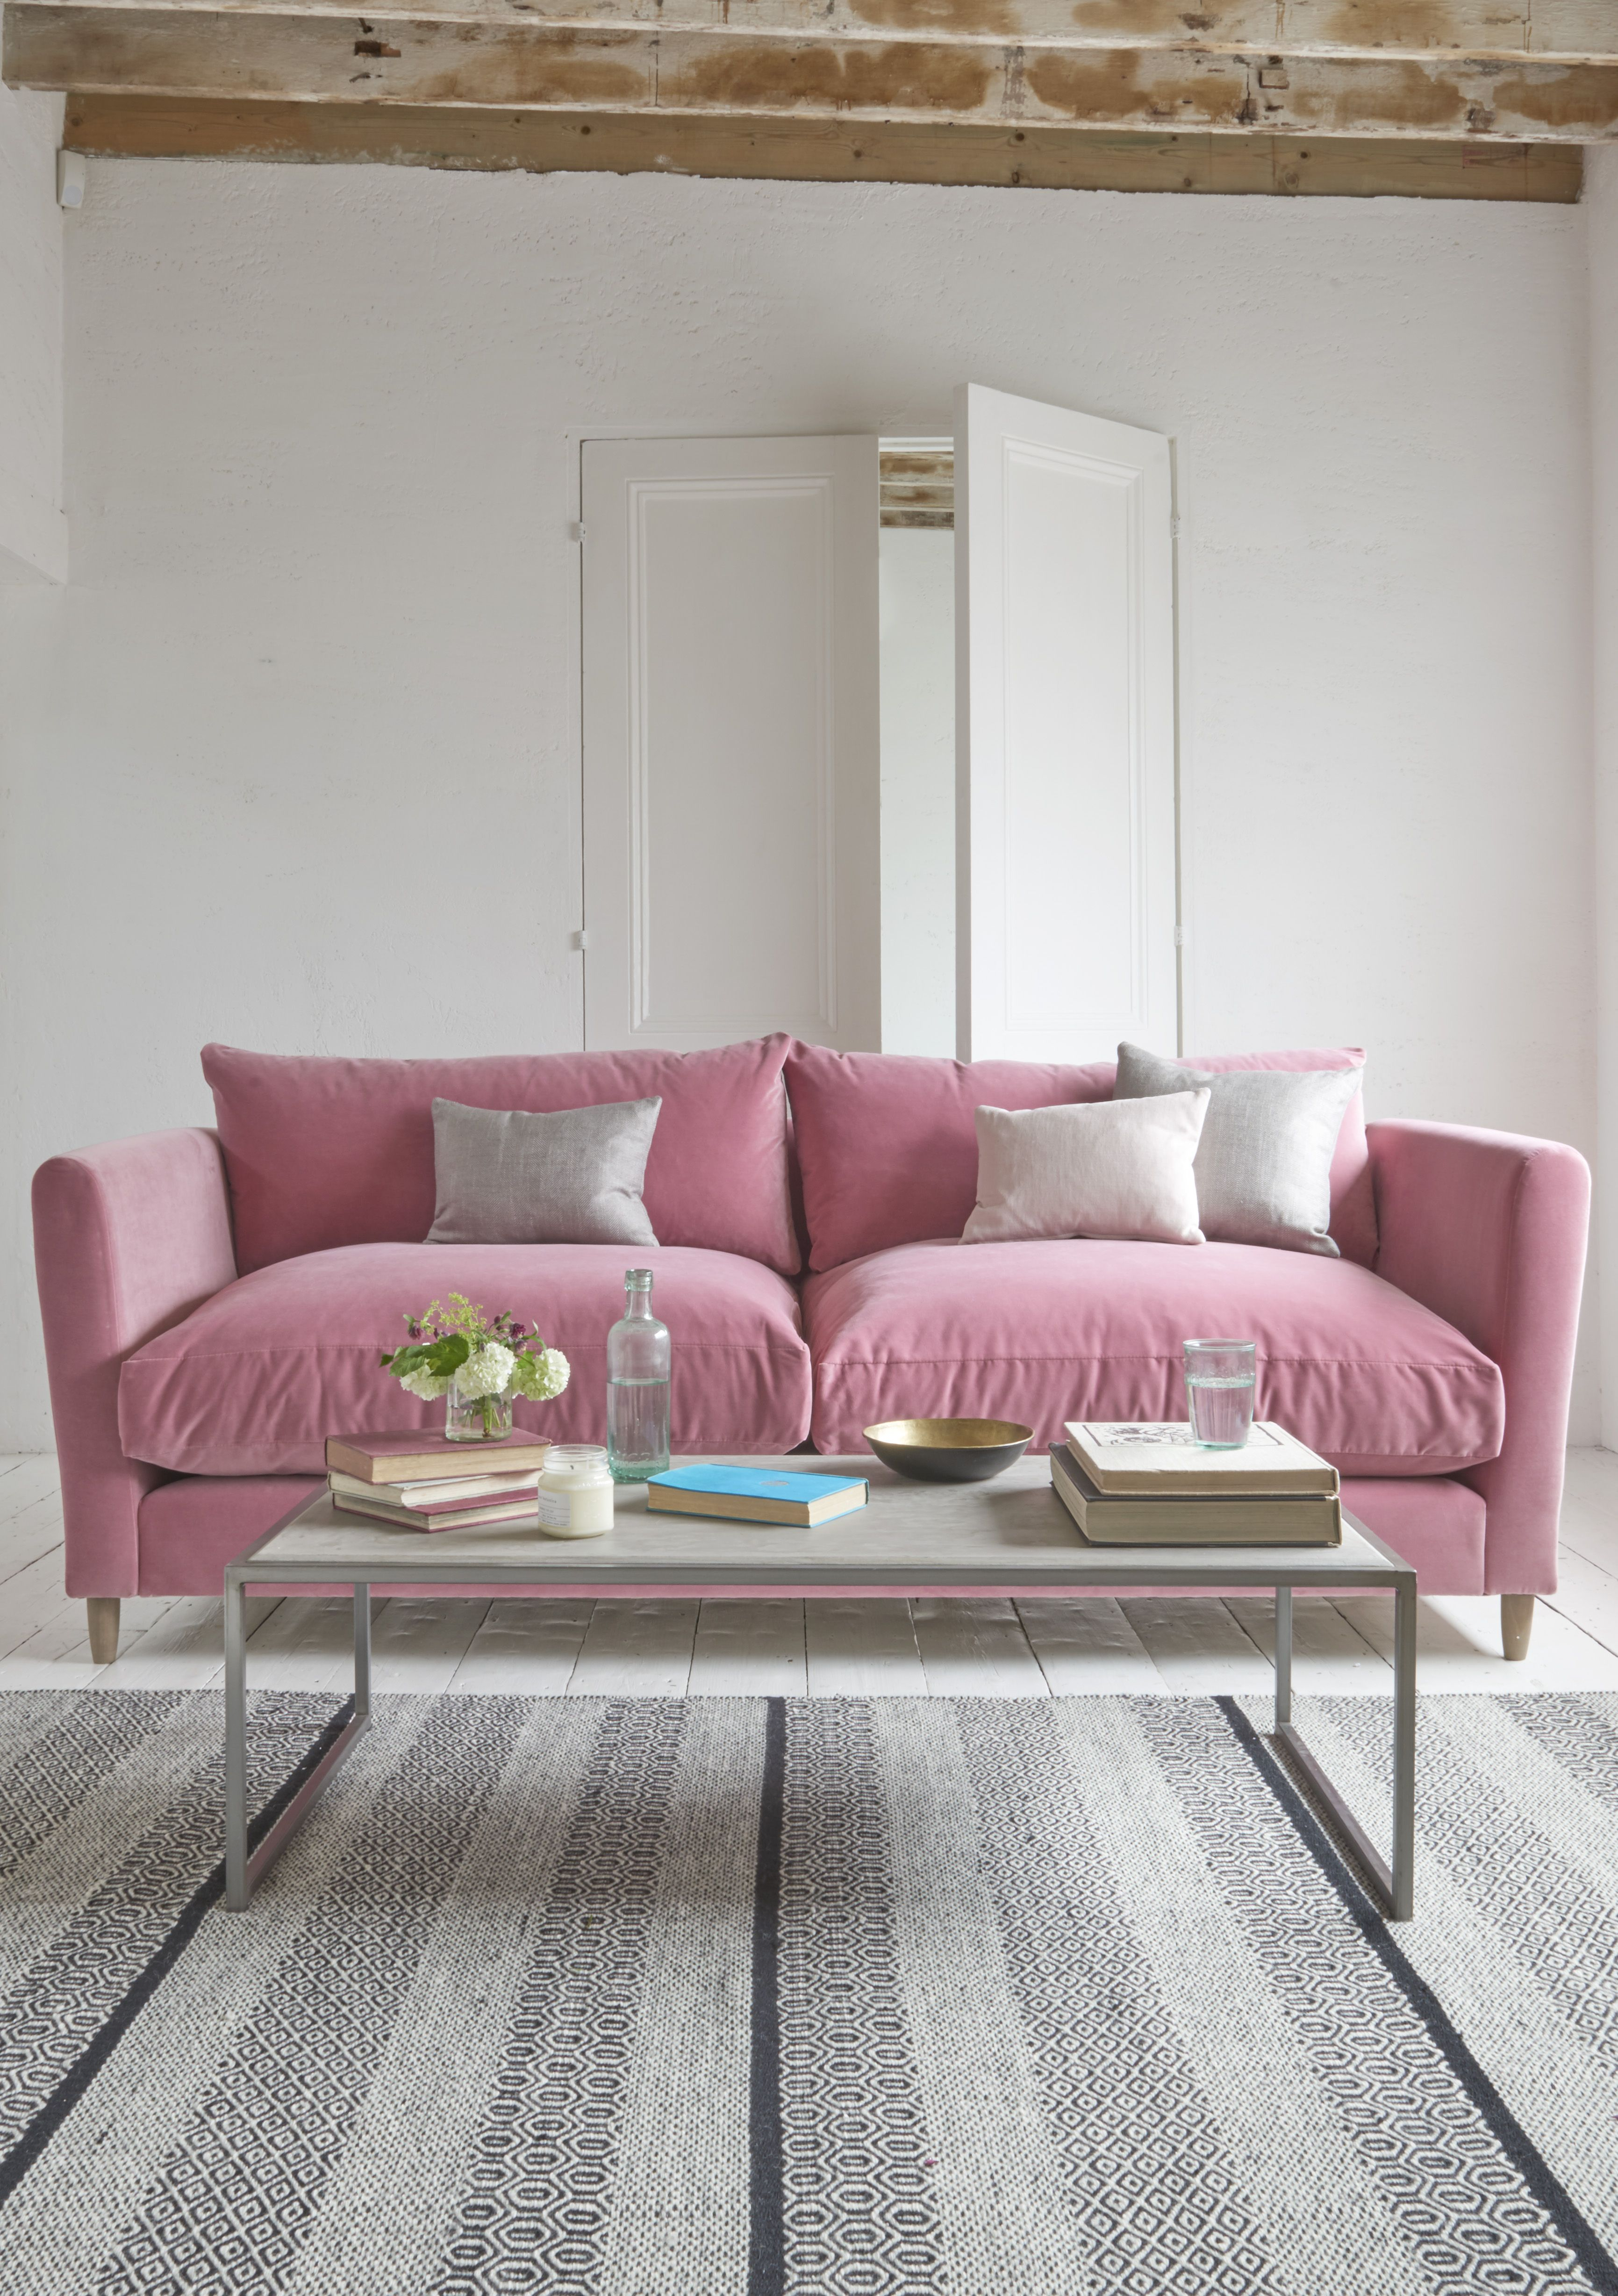 Loaf S Comfy Flopster Sofa In A Deep Pink Dusty Rose